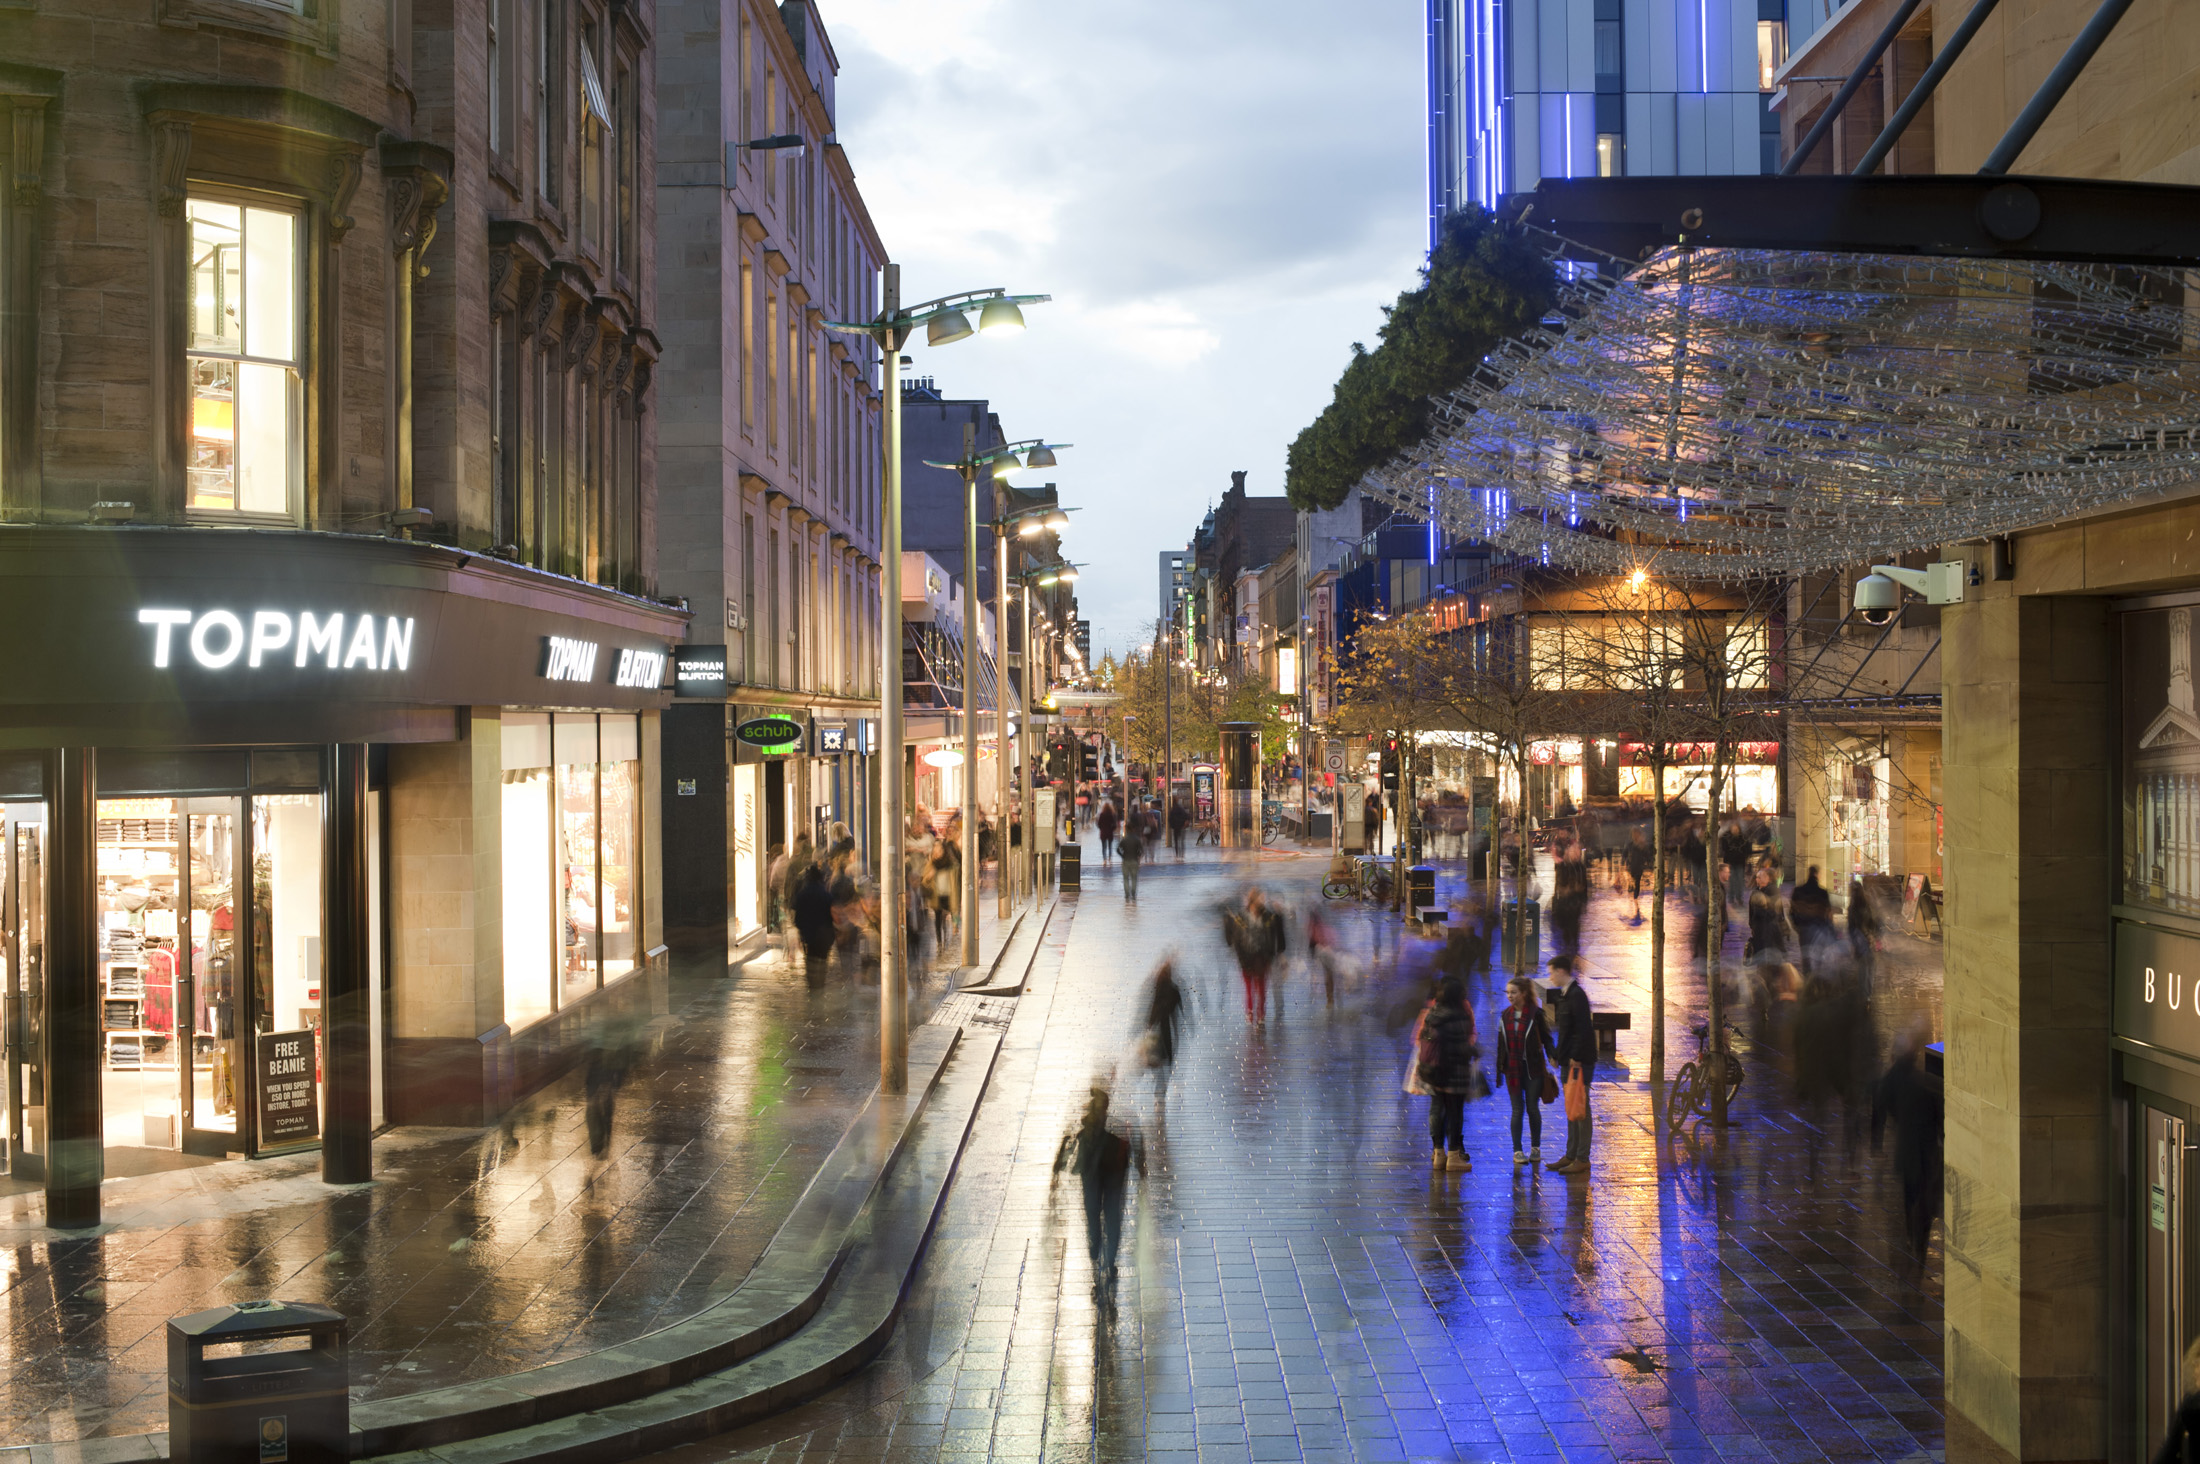 Sauchiehall Street in Glasgow is one of the main commercial streets in the city centre viewed here at night with pedestrians walking past illuminated shop fronts